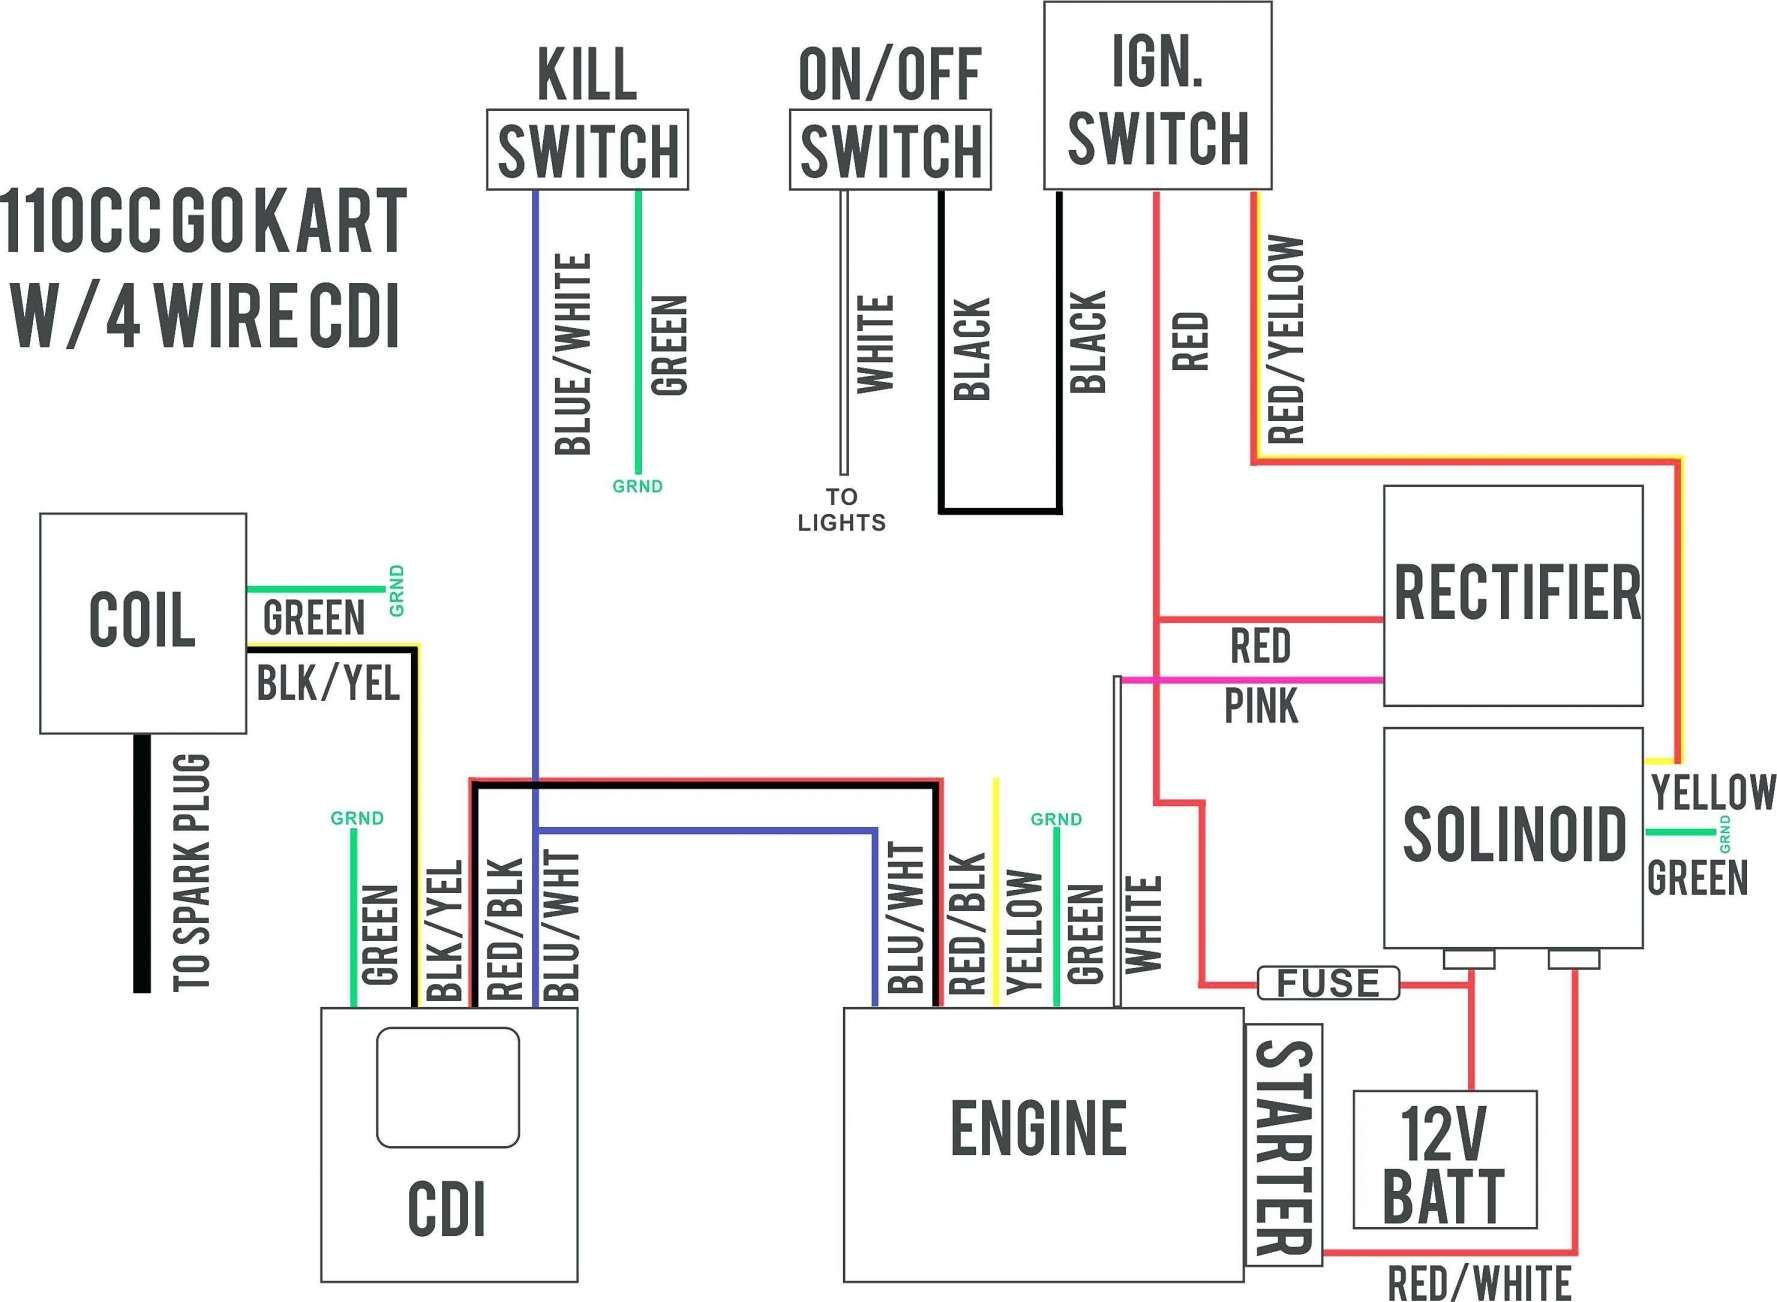 1Kz Engine Wiring Diagram and Tps Wire Diagram Wiring